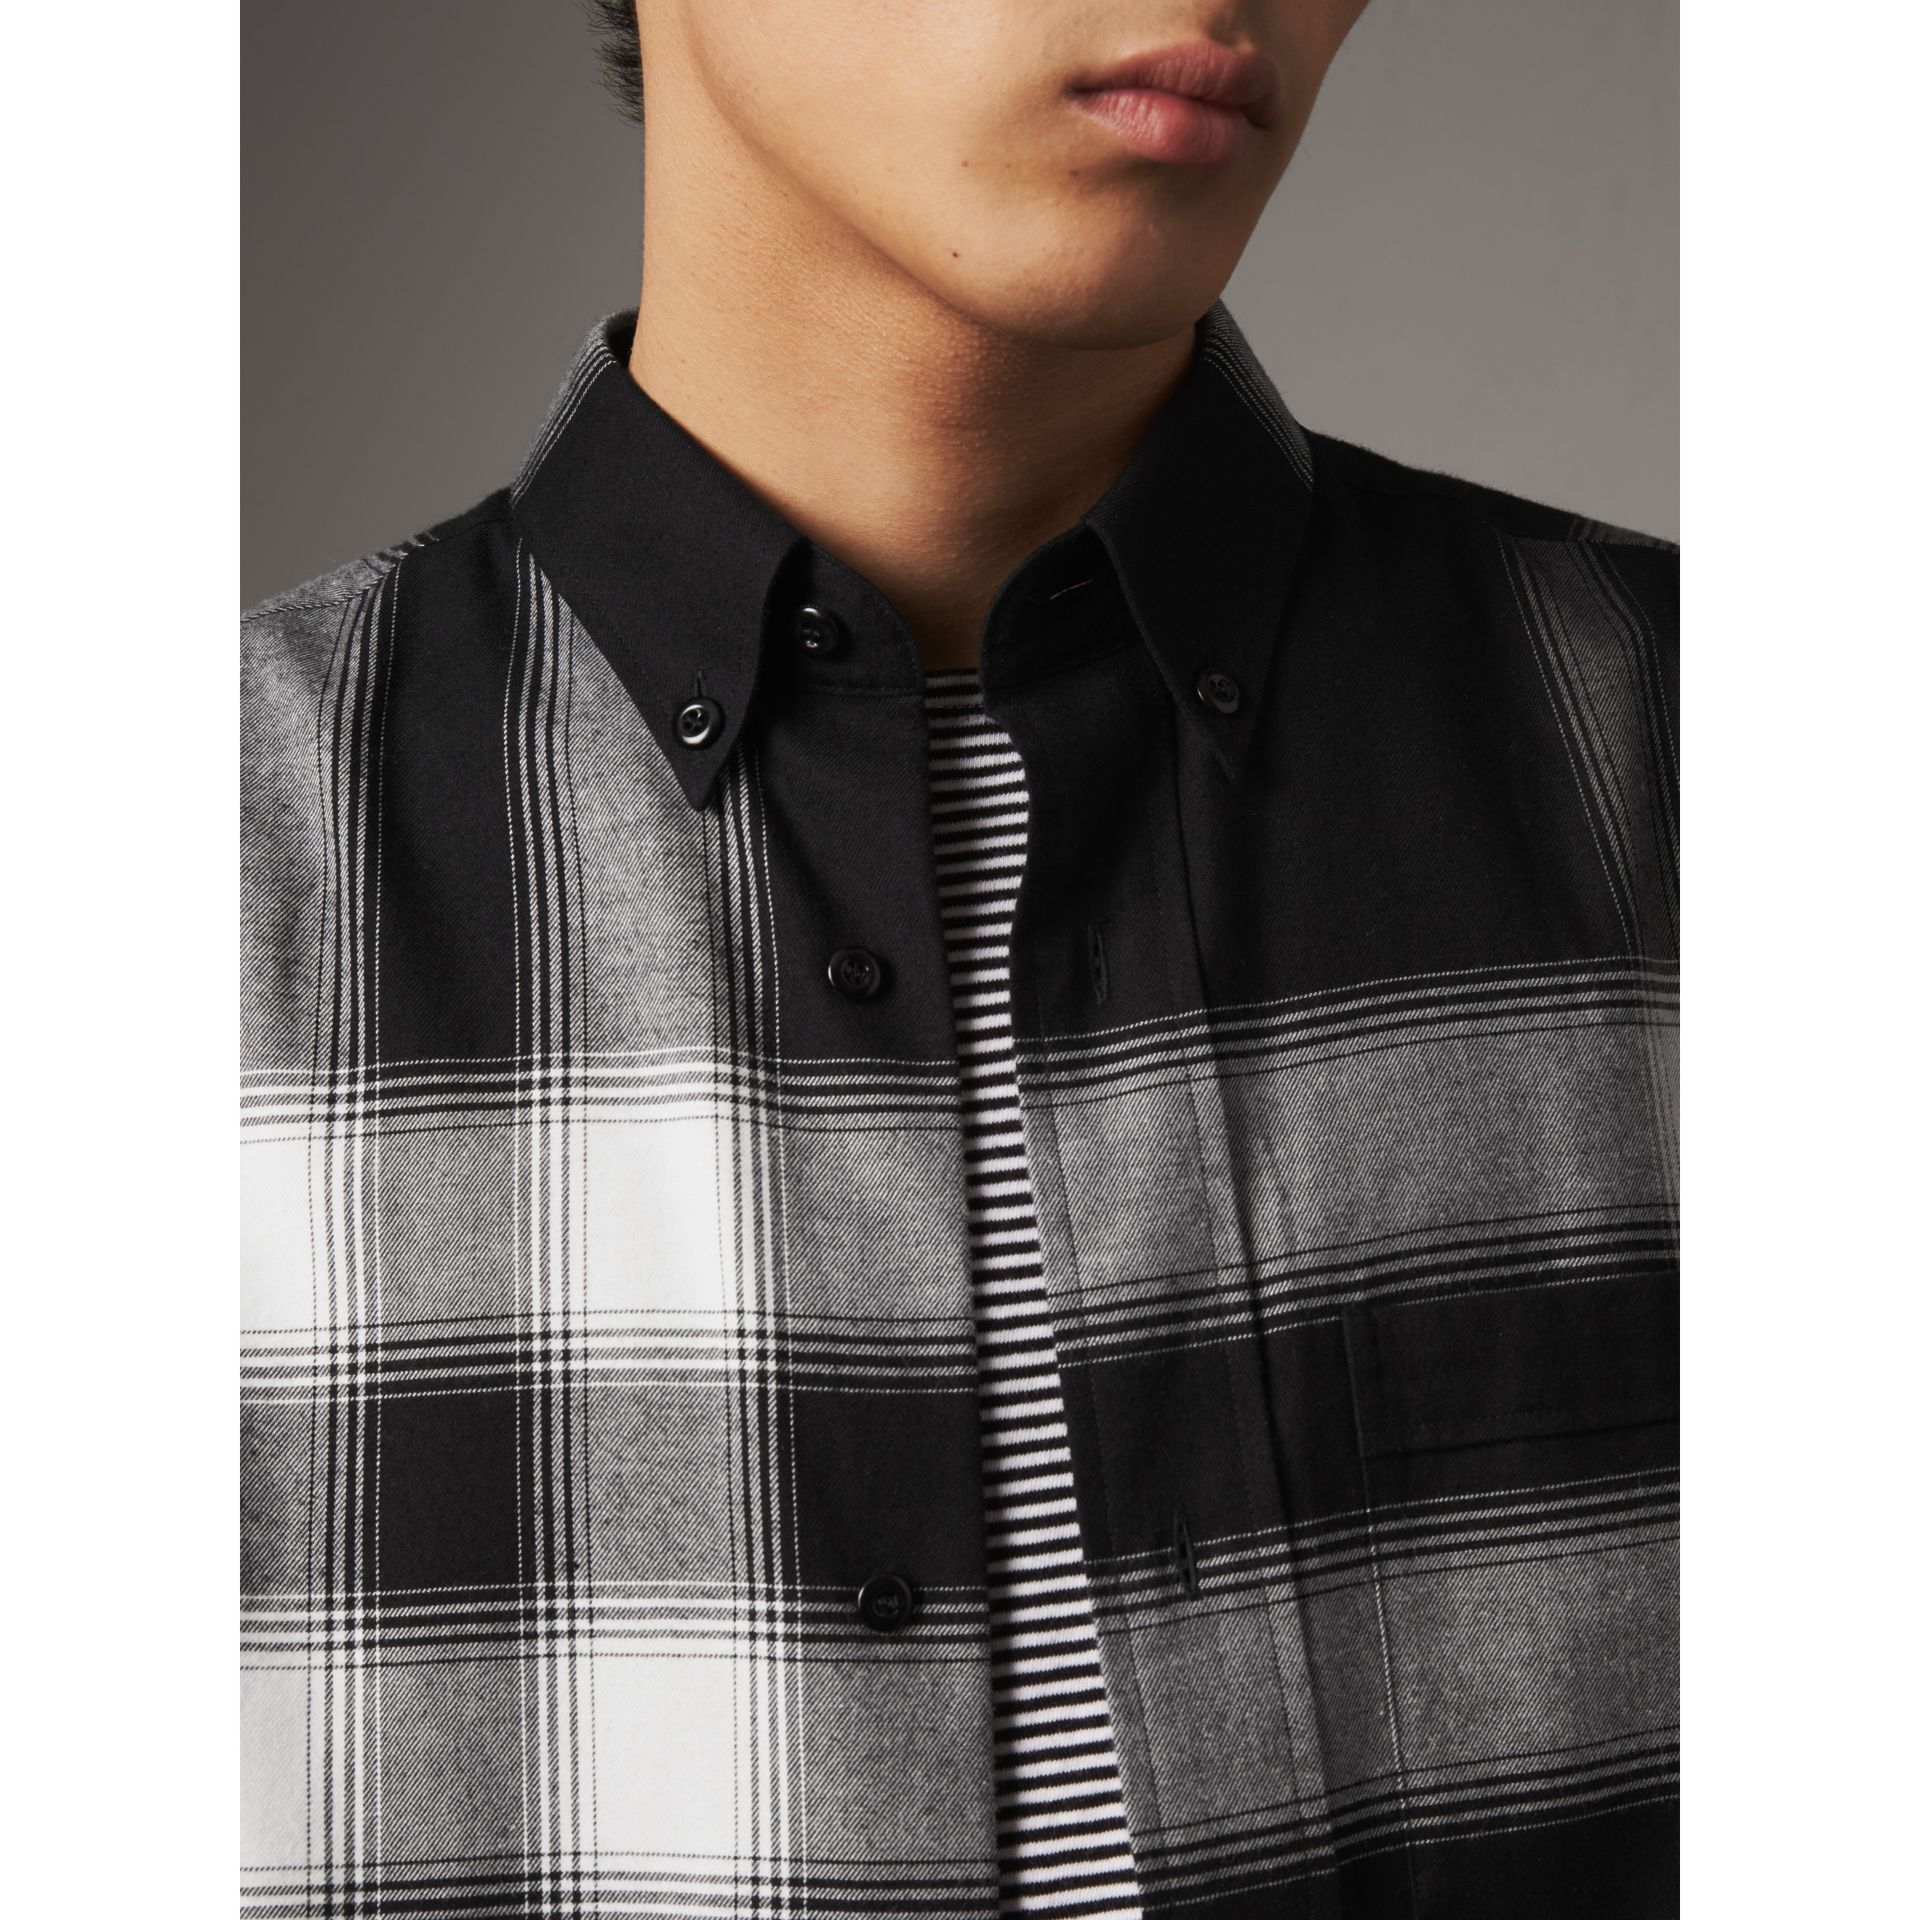 Ombré Check Cotton Flannel Shirt in Black - Men | Burberry United Kingdom - gallery image 2